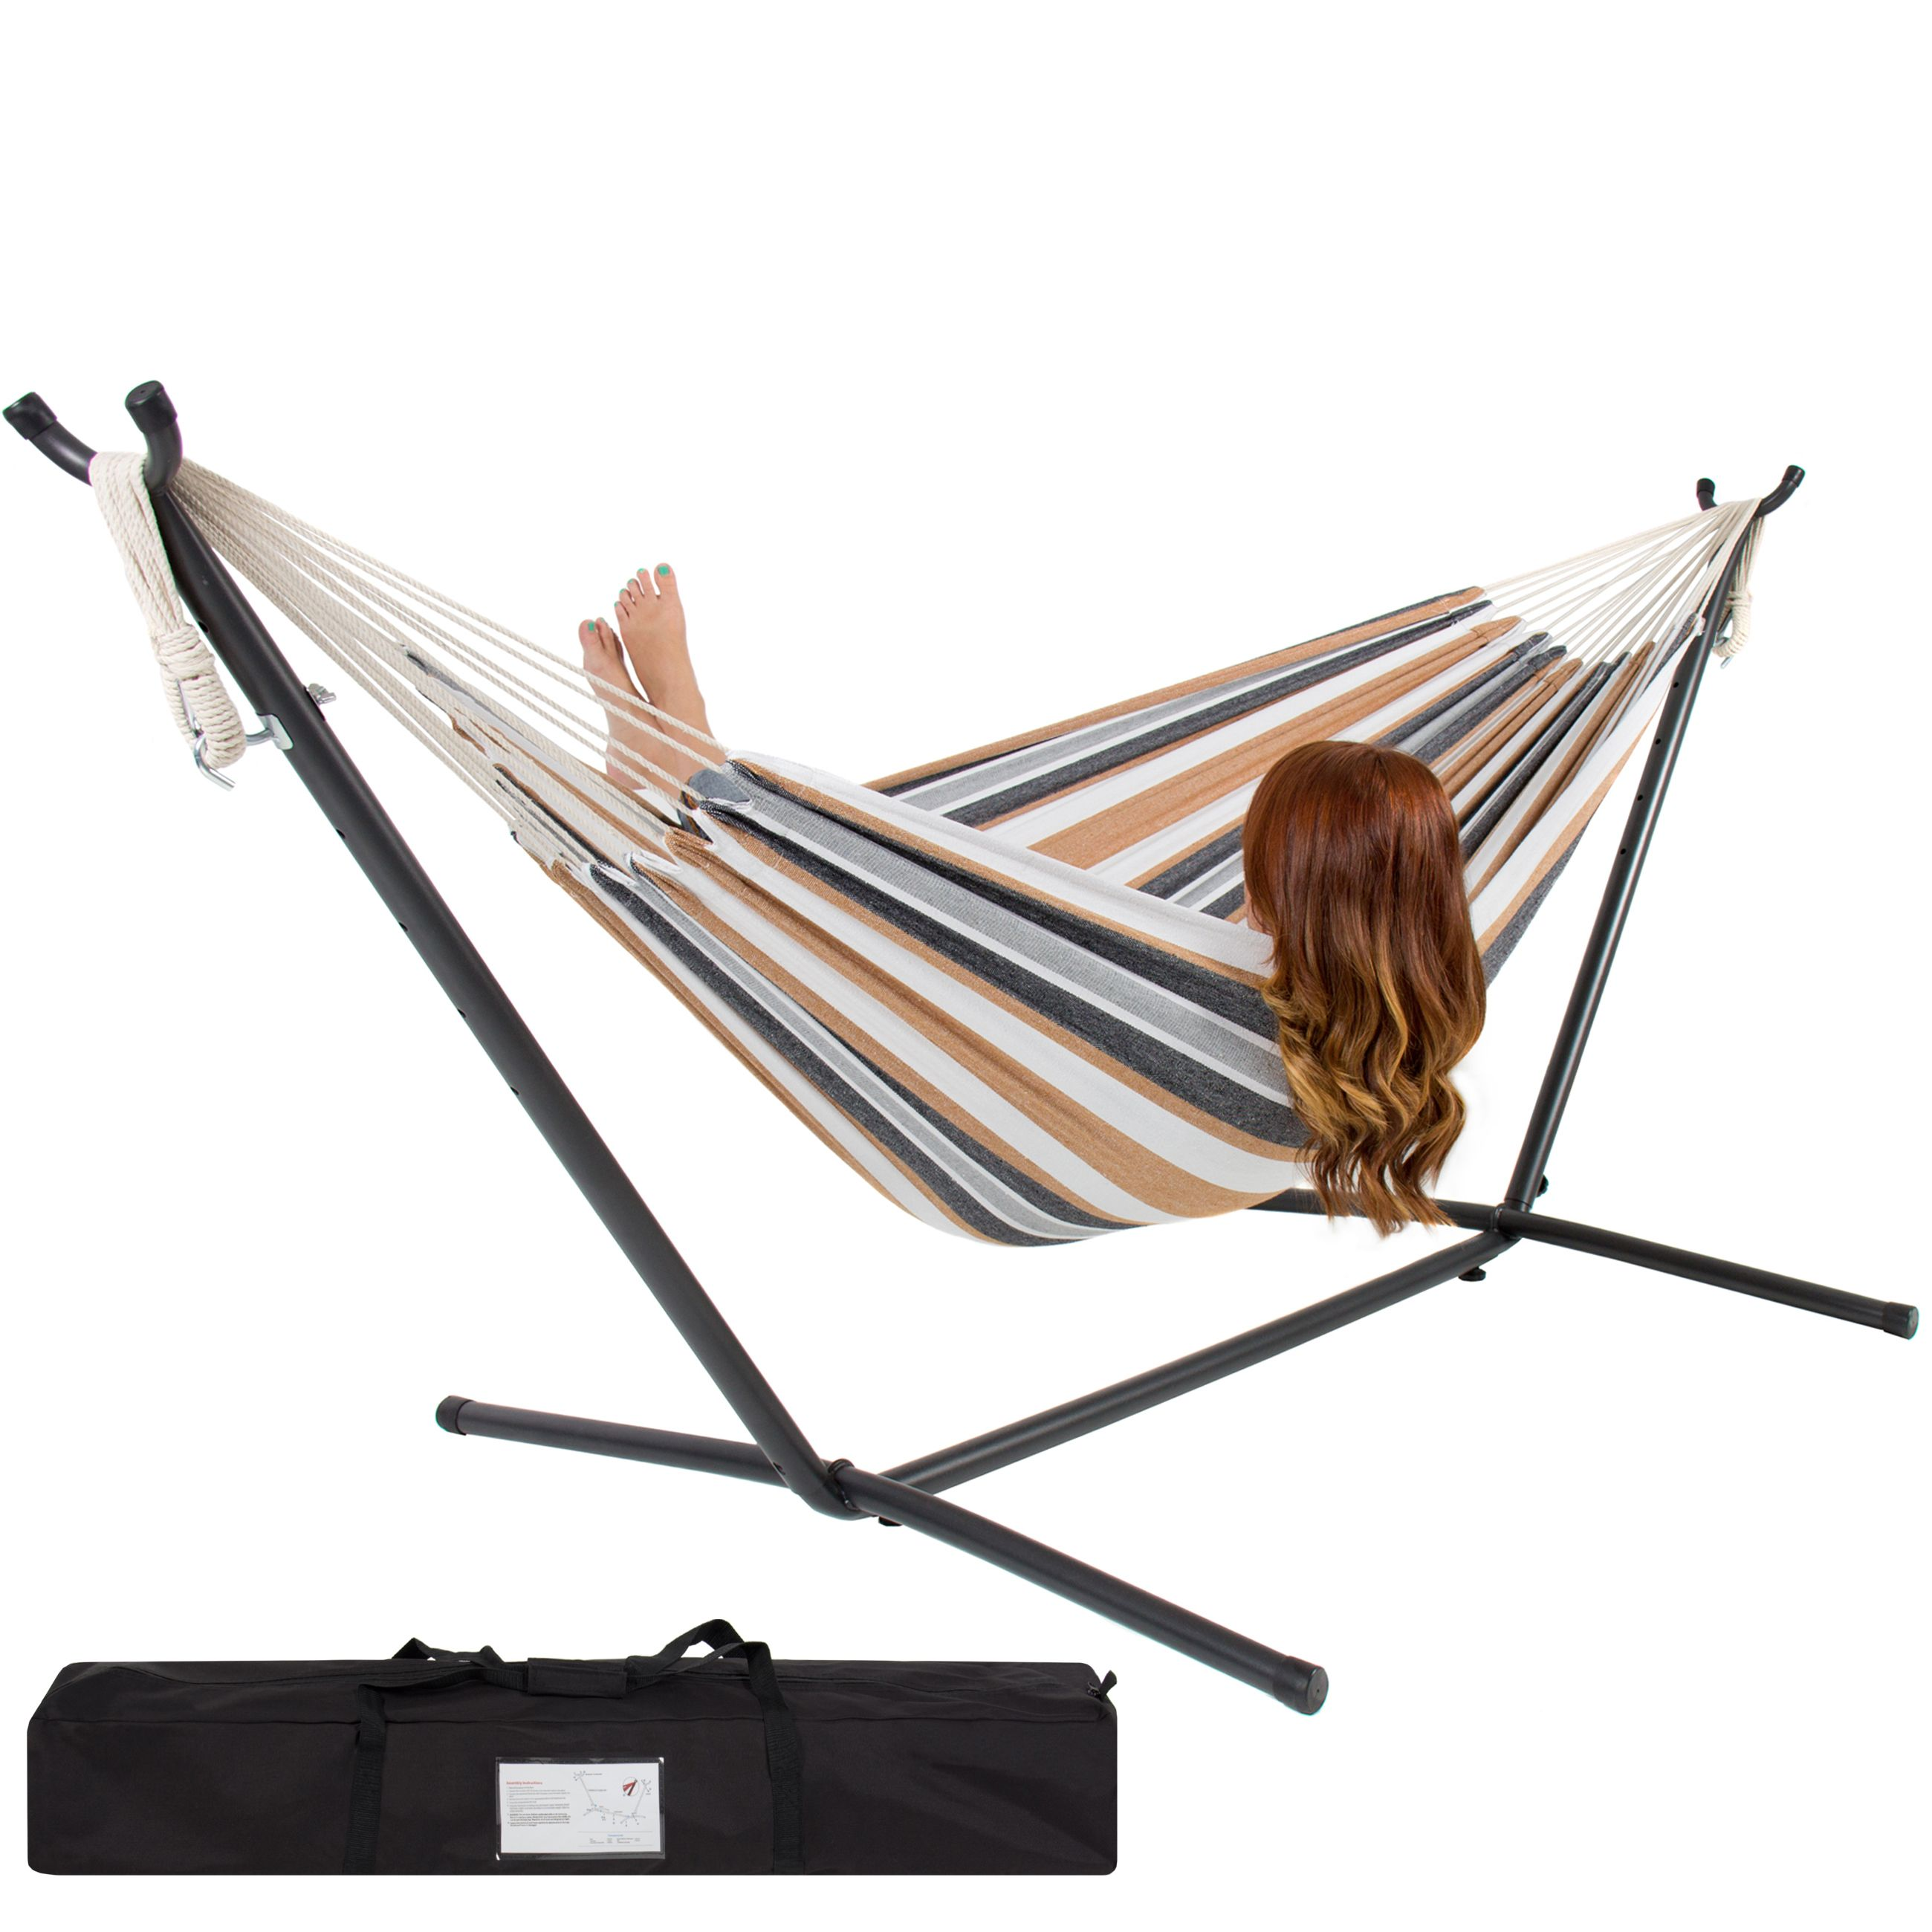 quality hammocks hammock pin swing double lazyrezt xl hanging colour chair and chairs